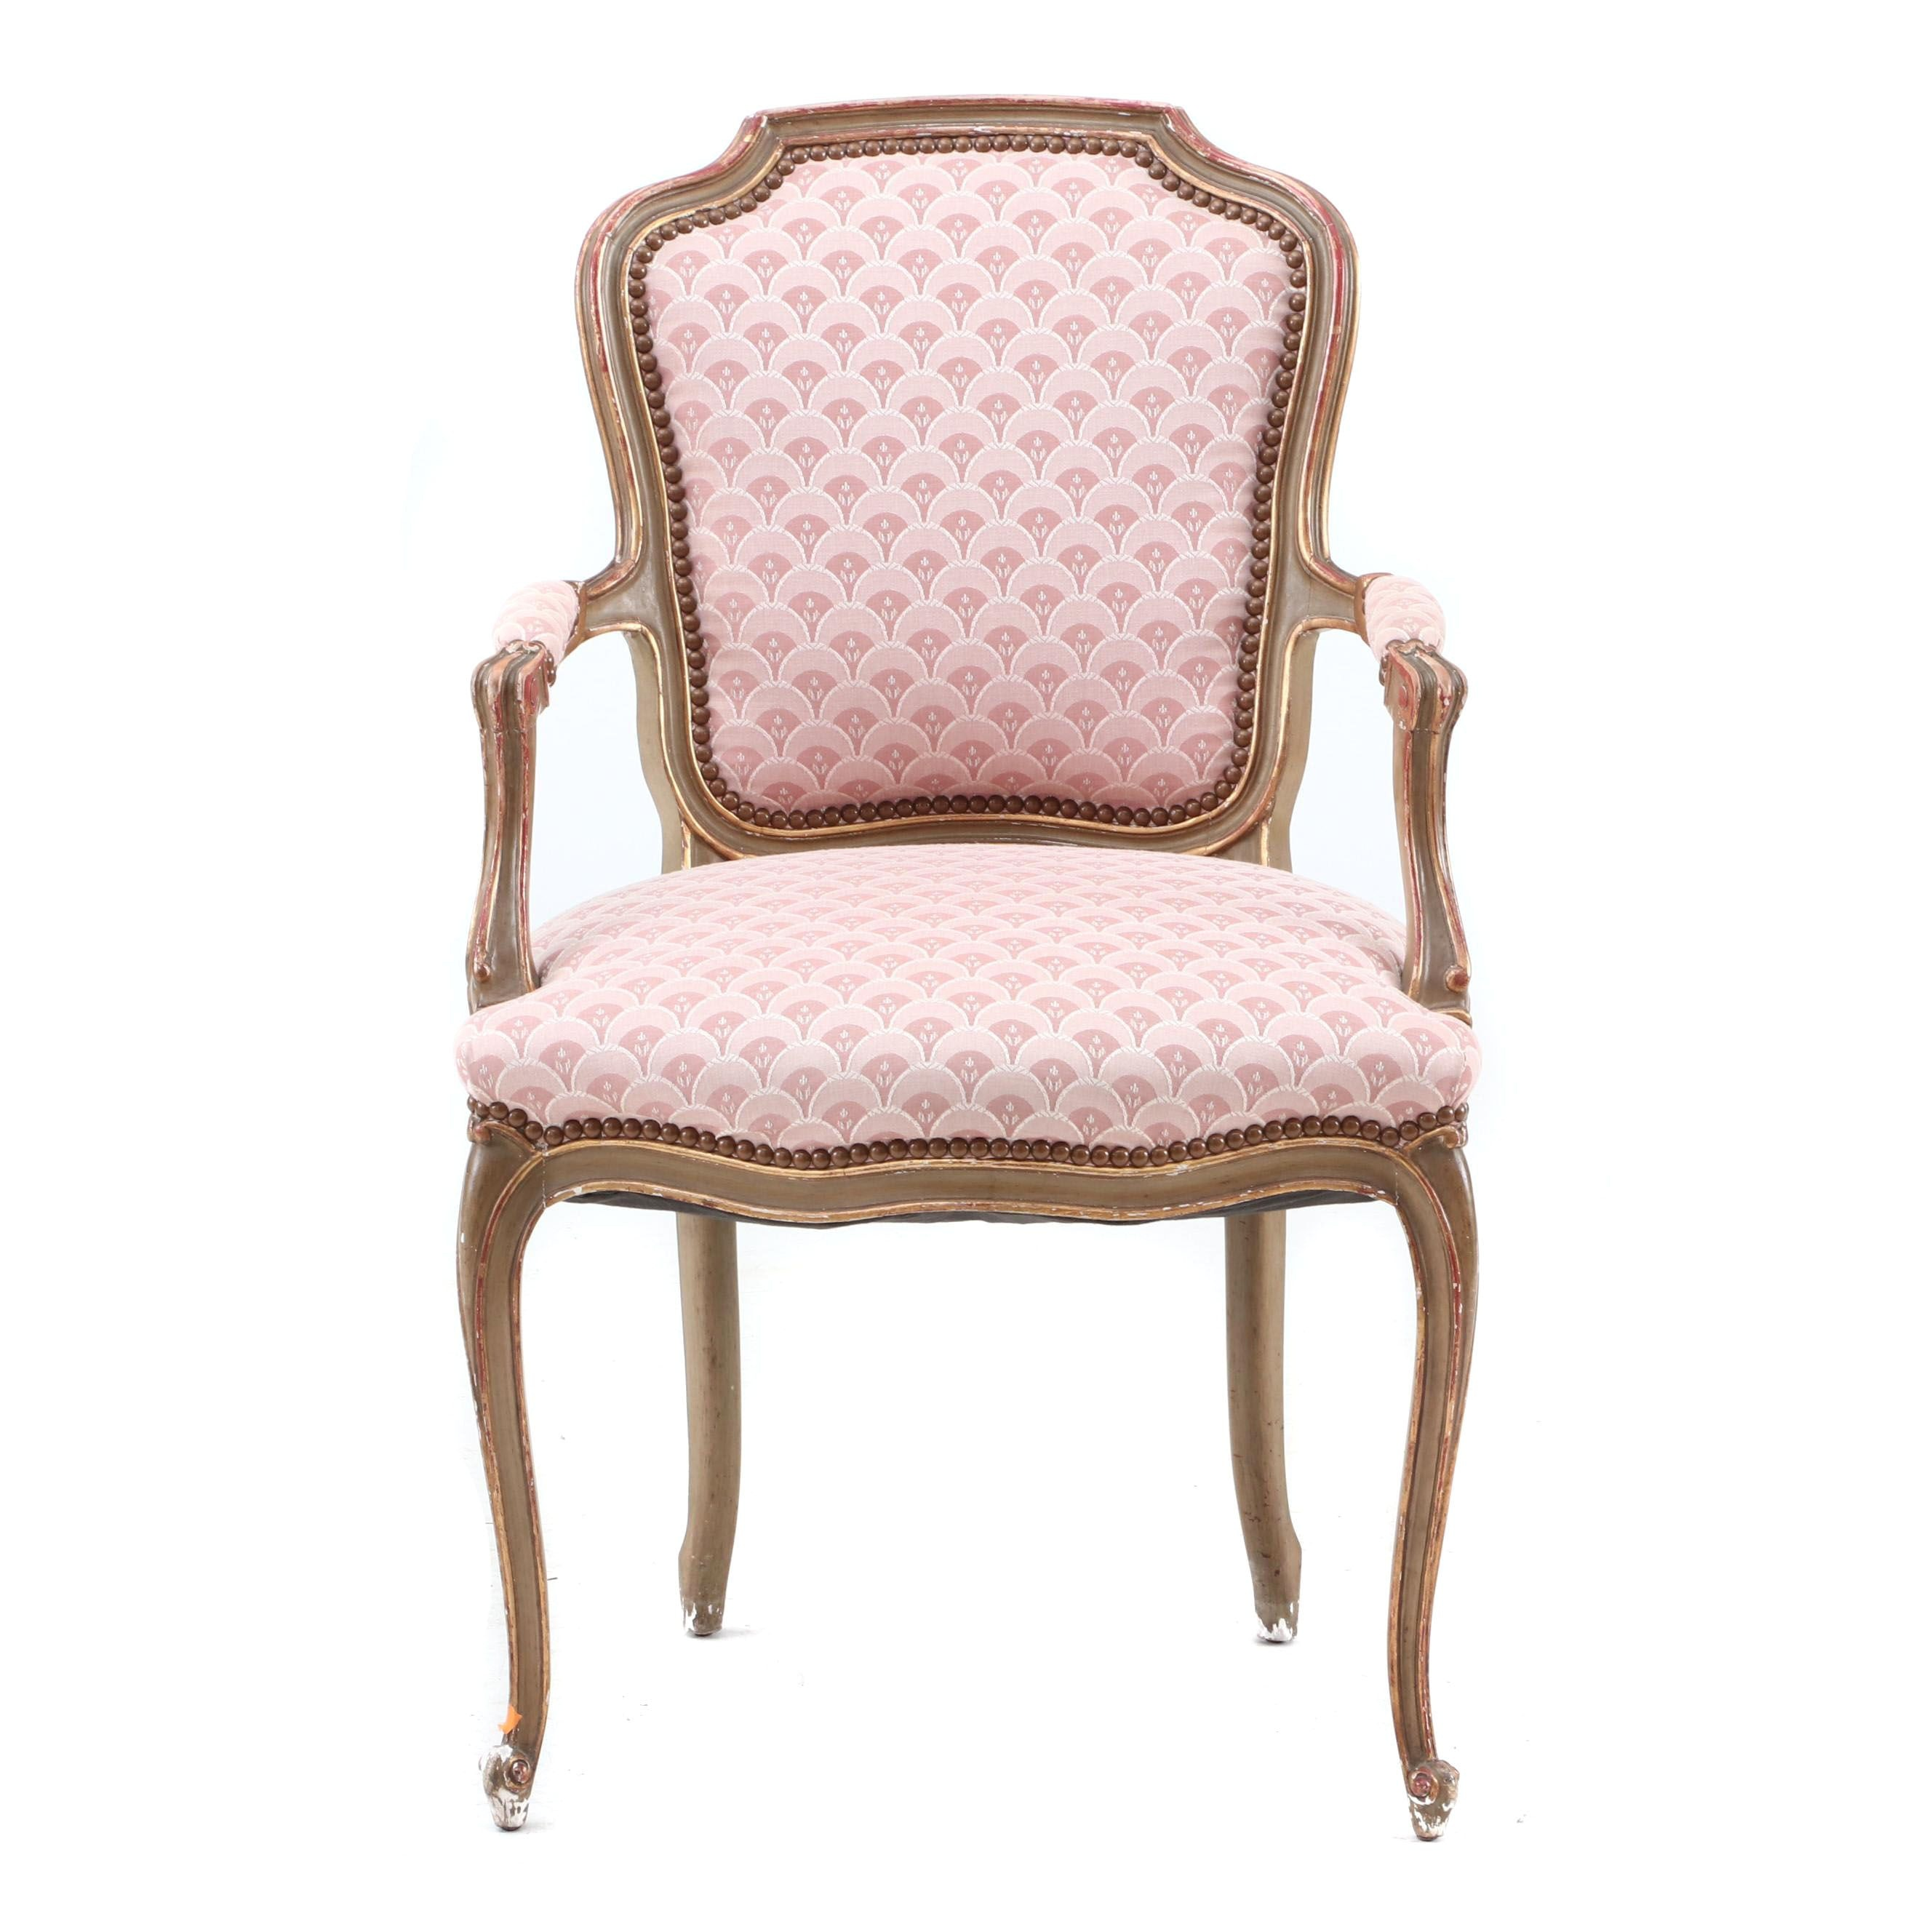 20th Century French Style Upholstered Boudoir Arm Chair